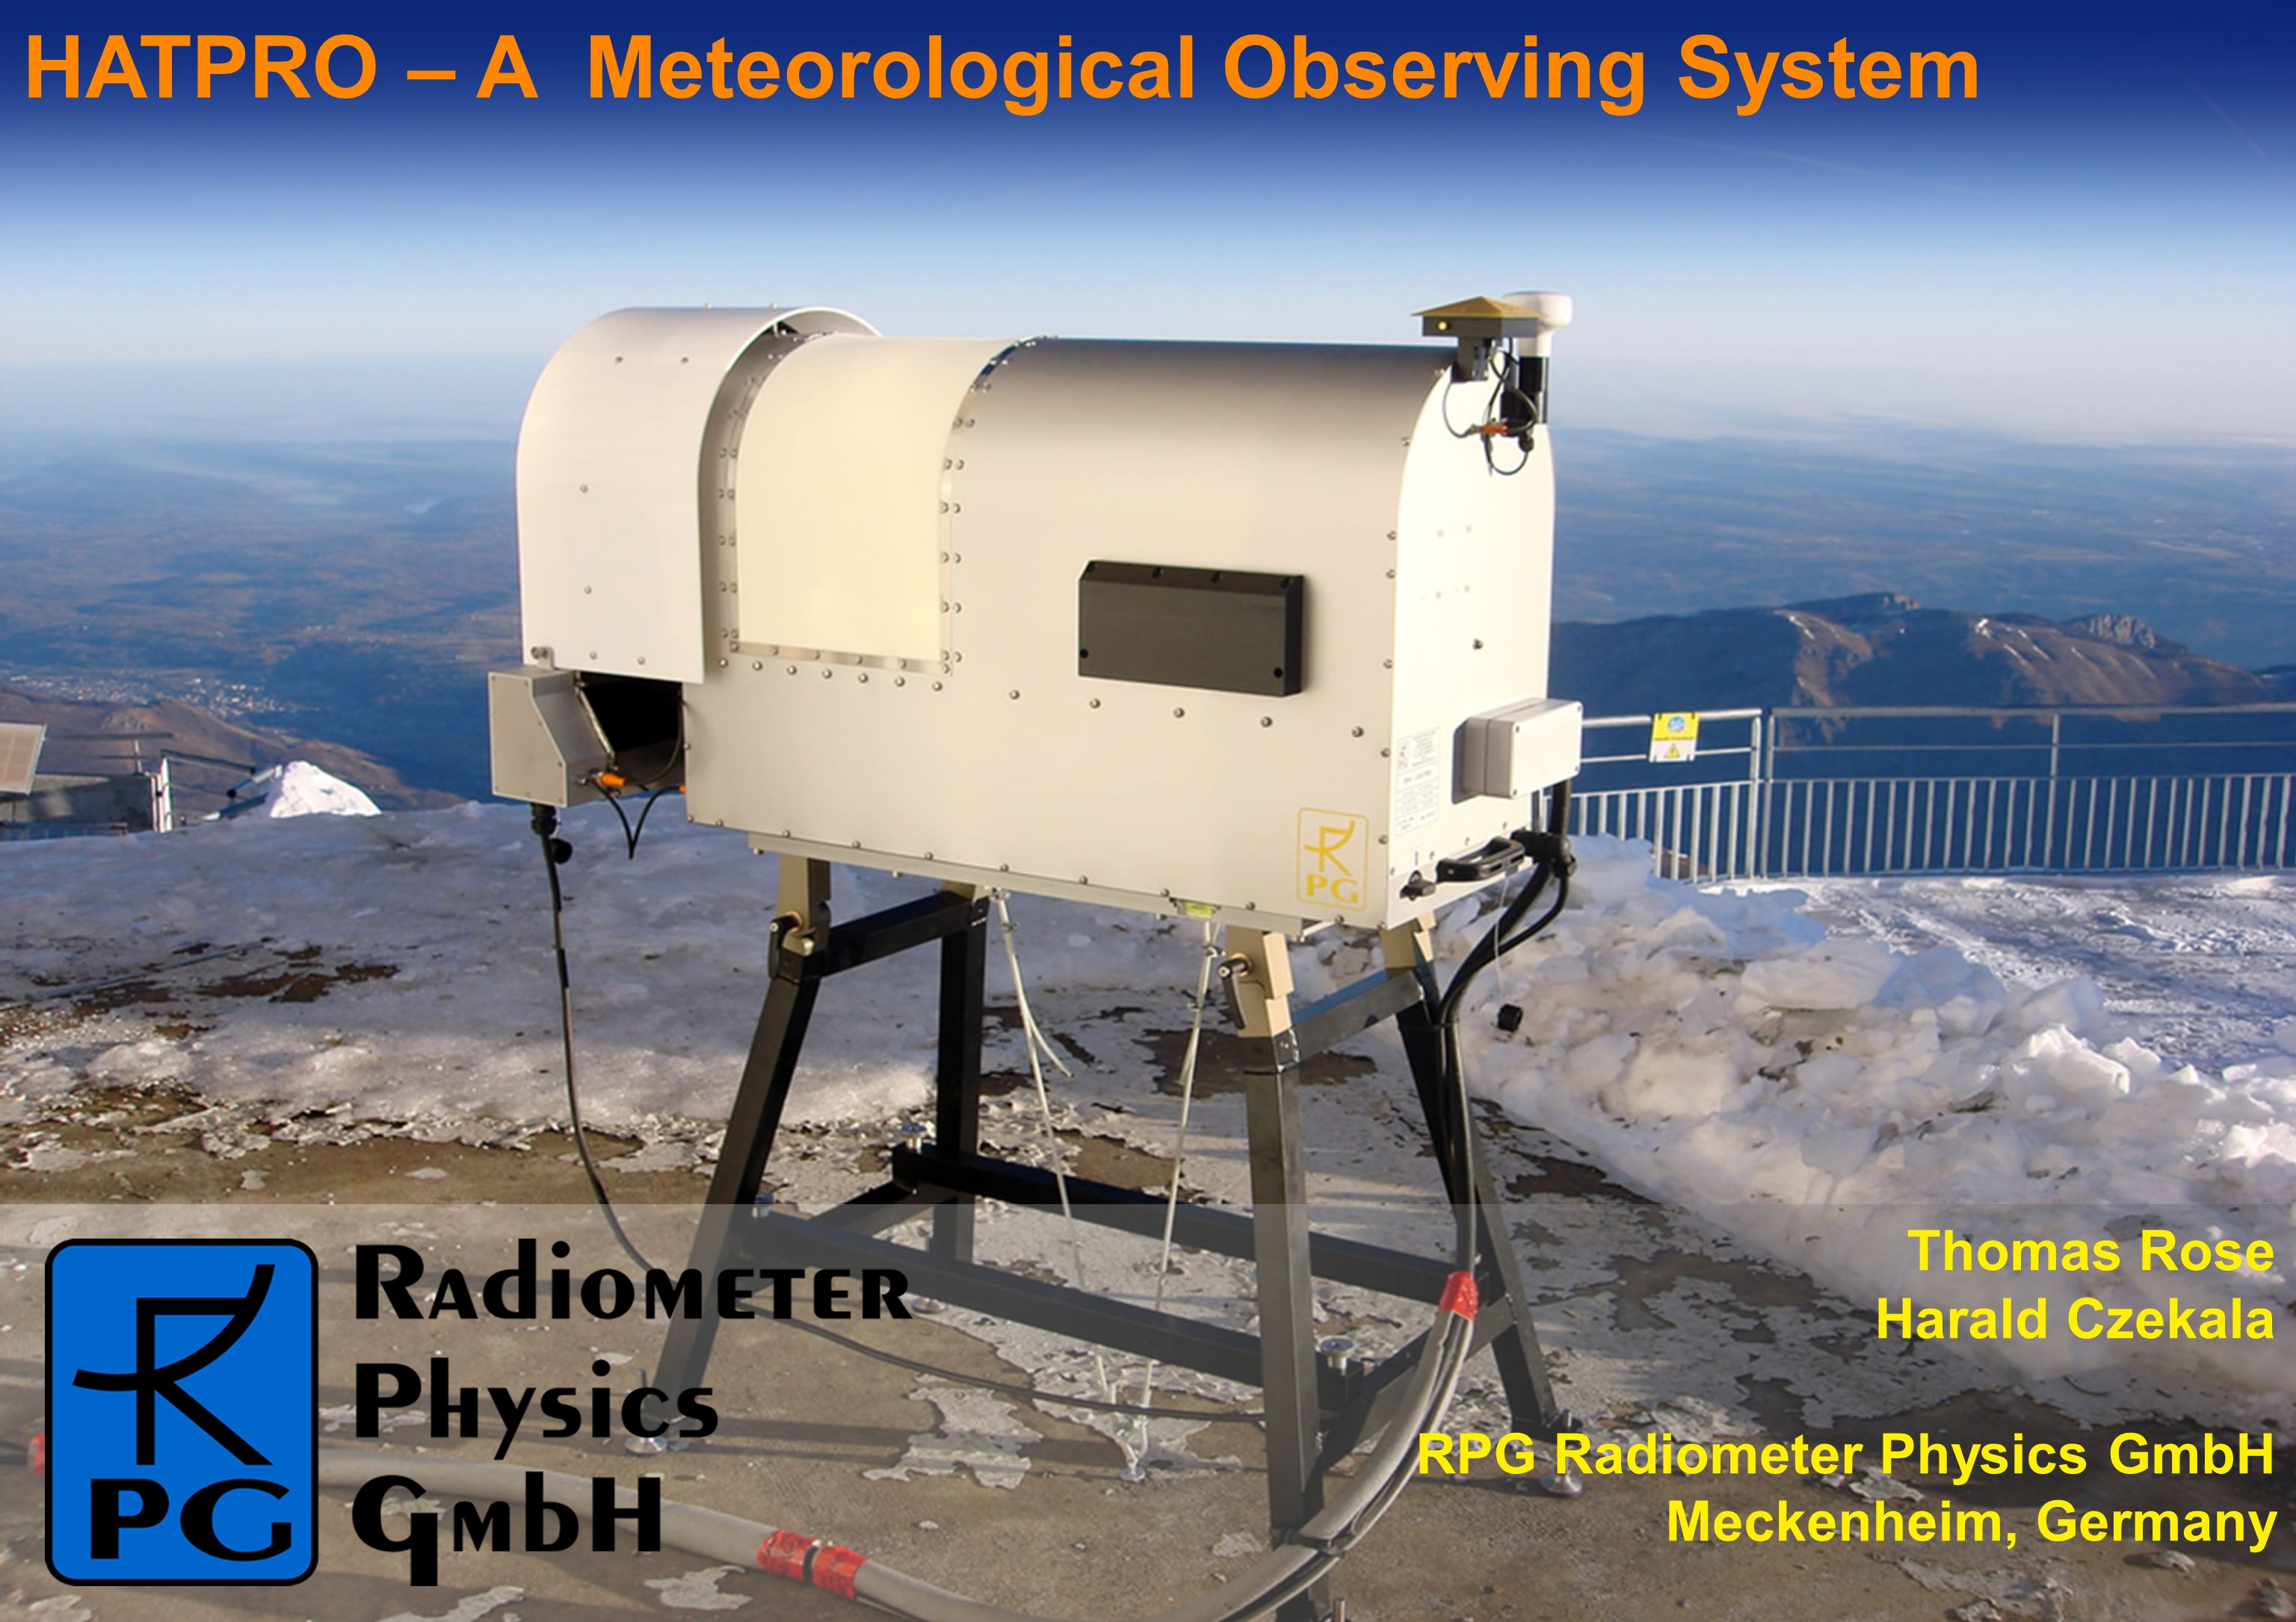 HATPRO – A Meteorological Observing System